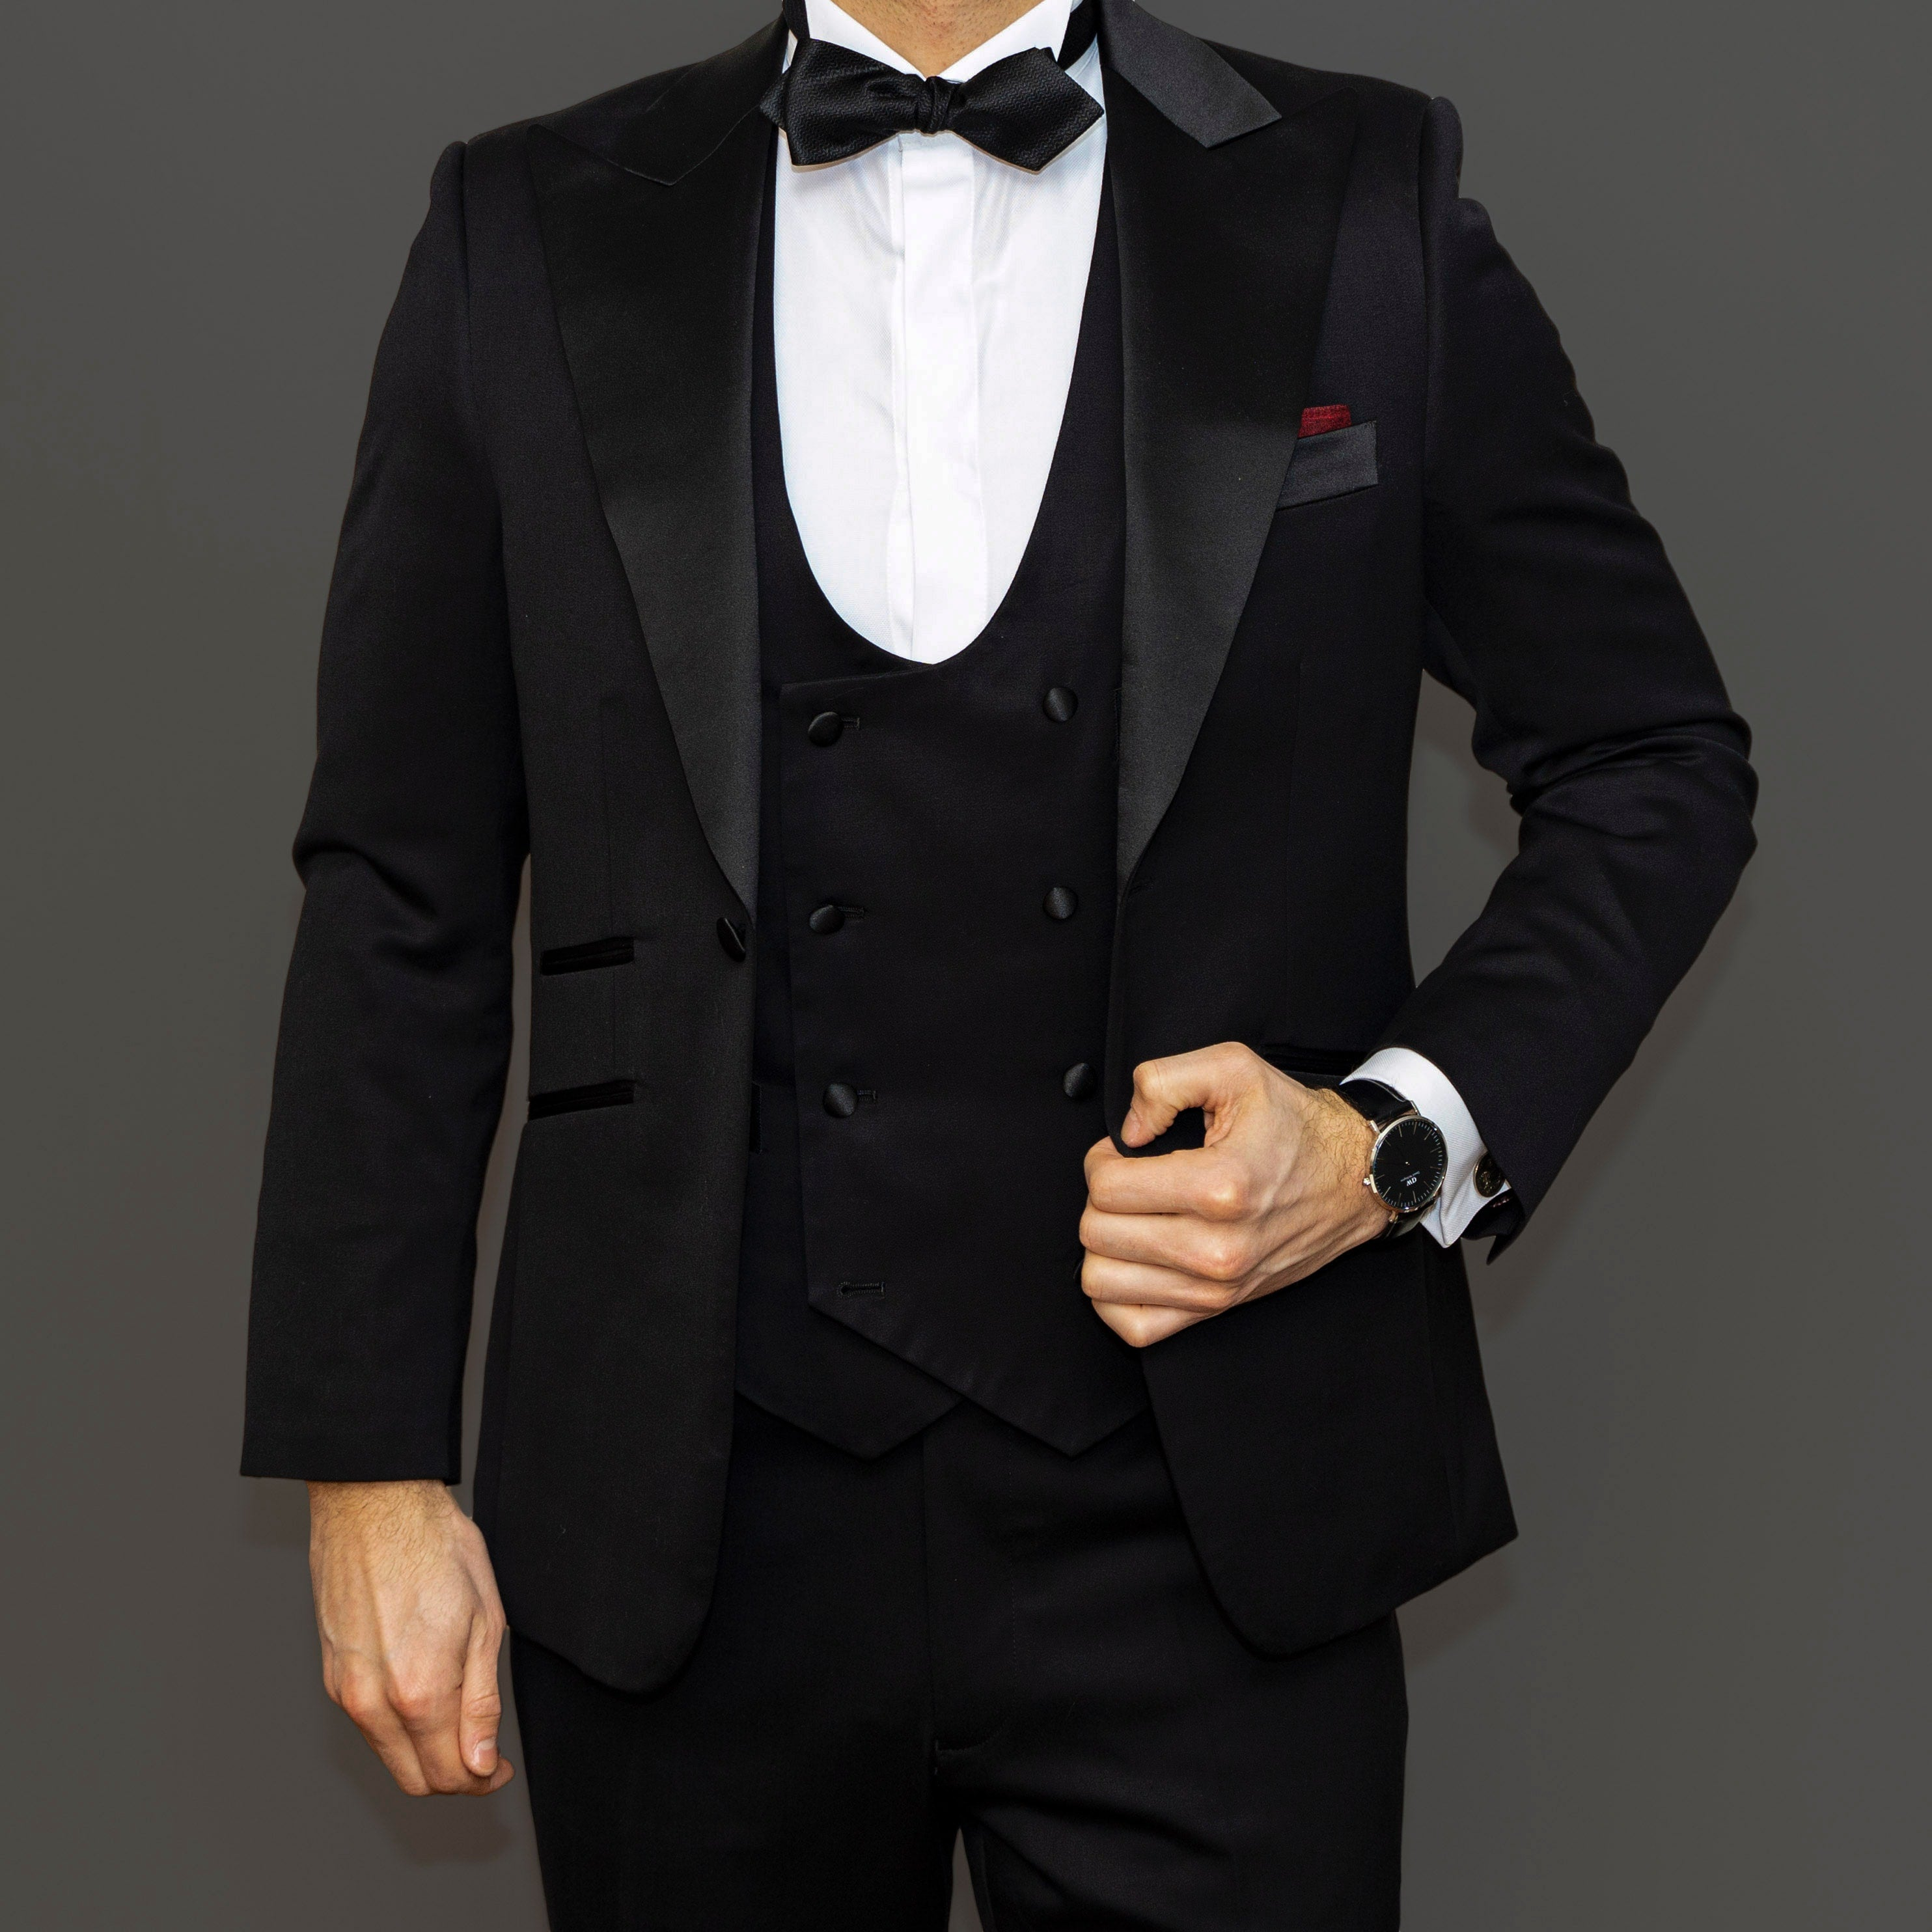 Wedding Suit or Tux